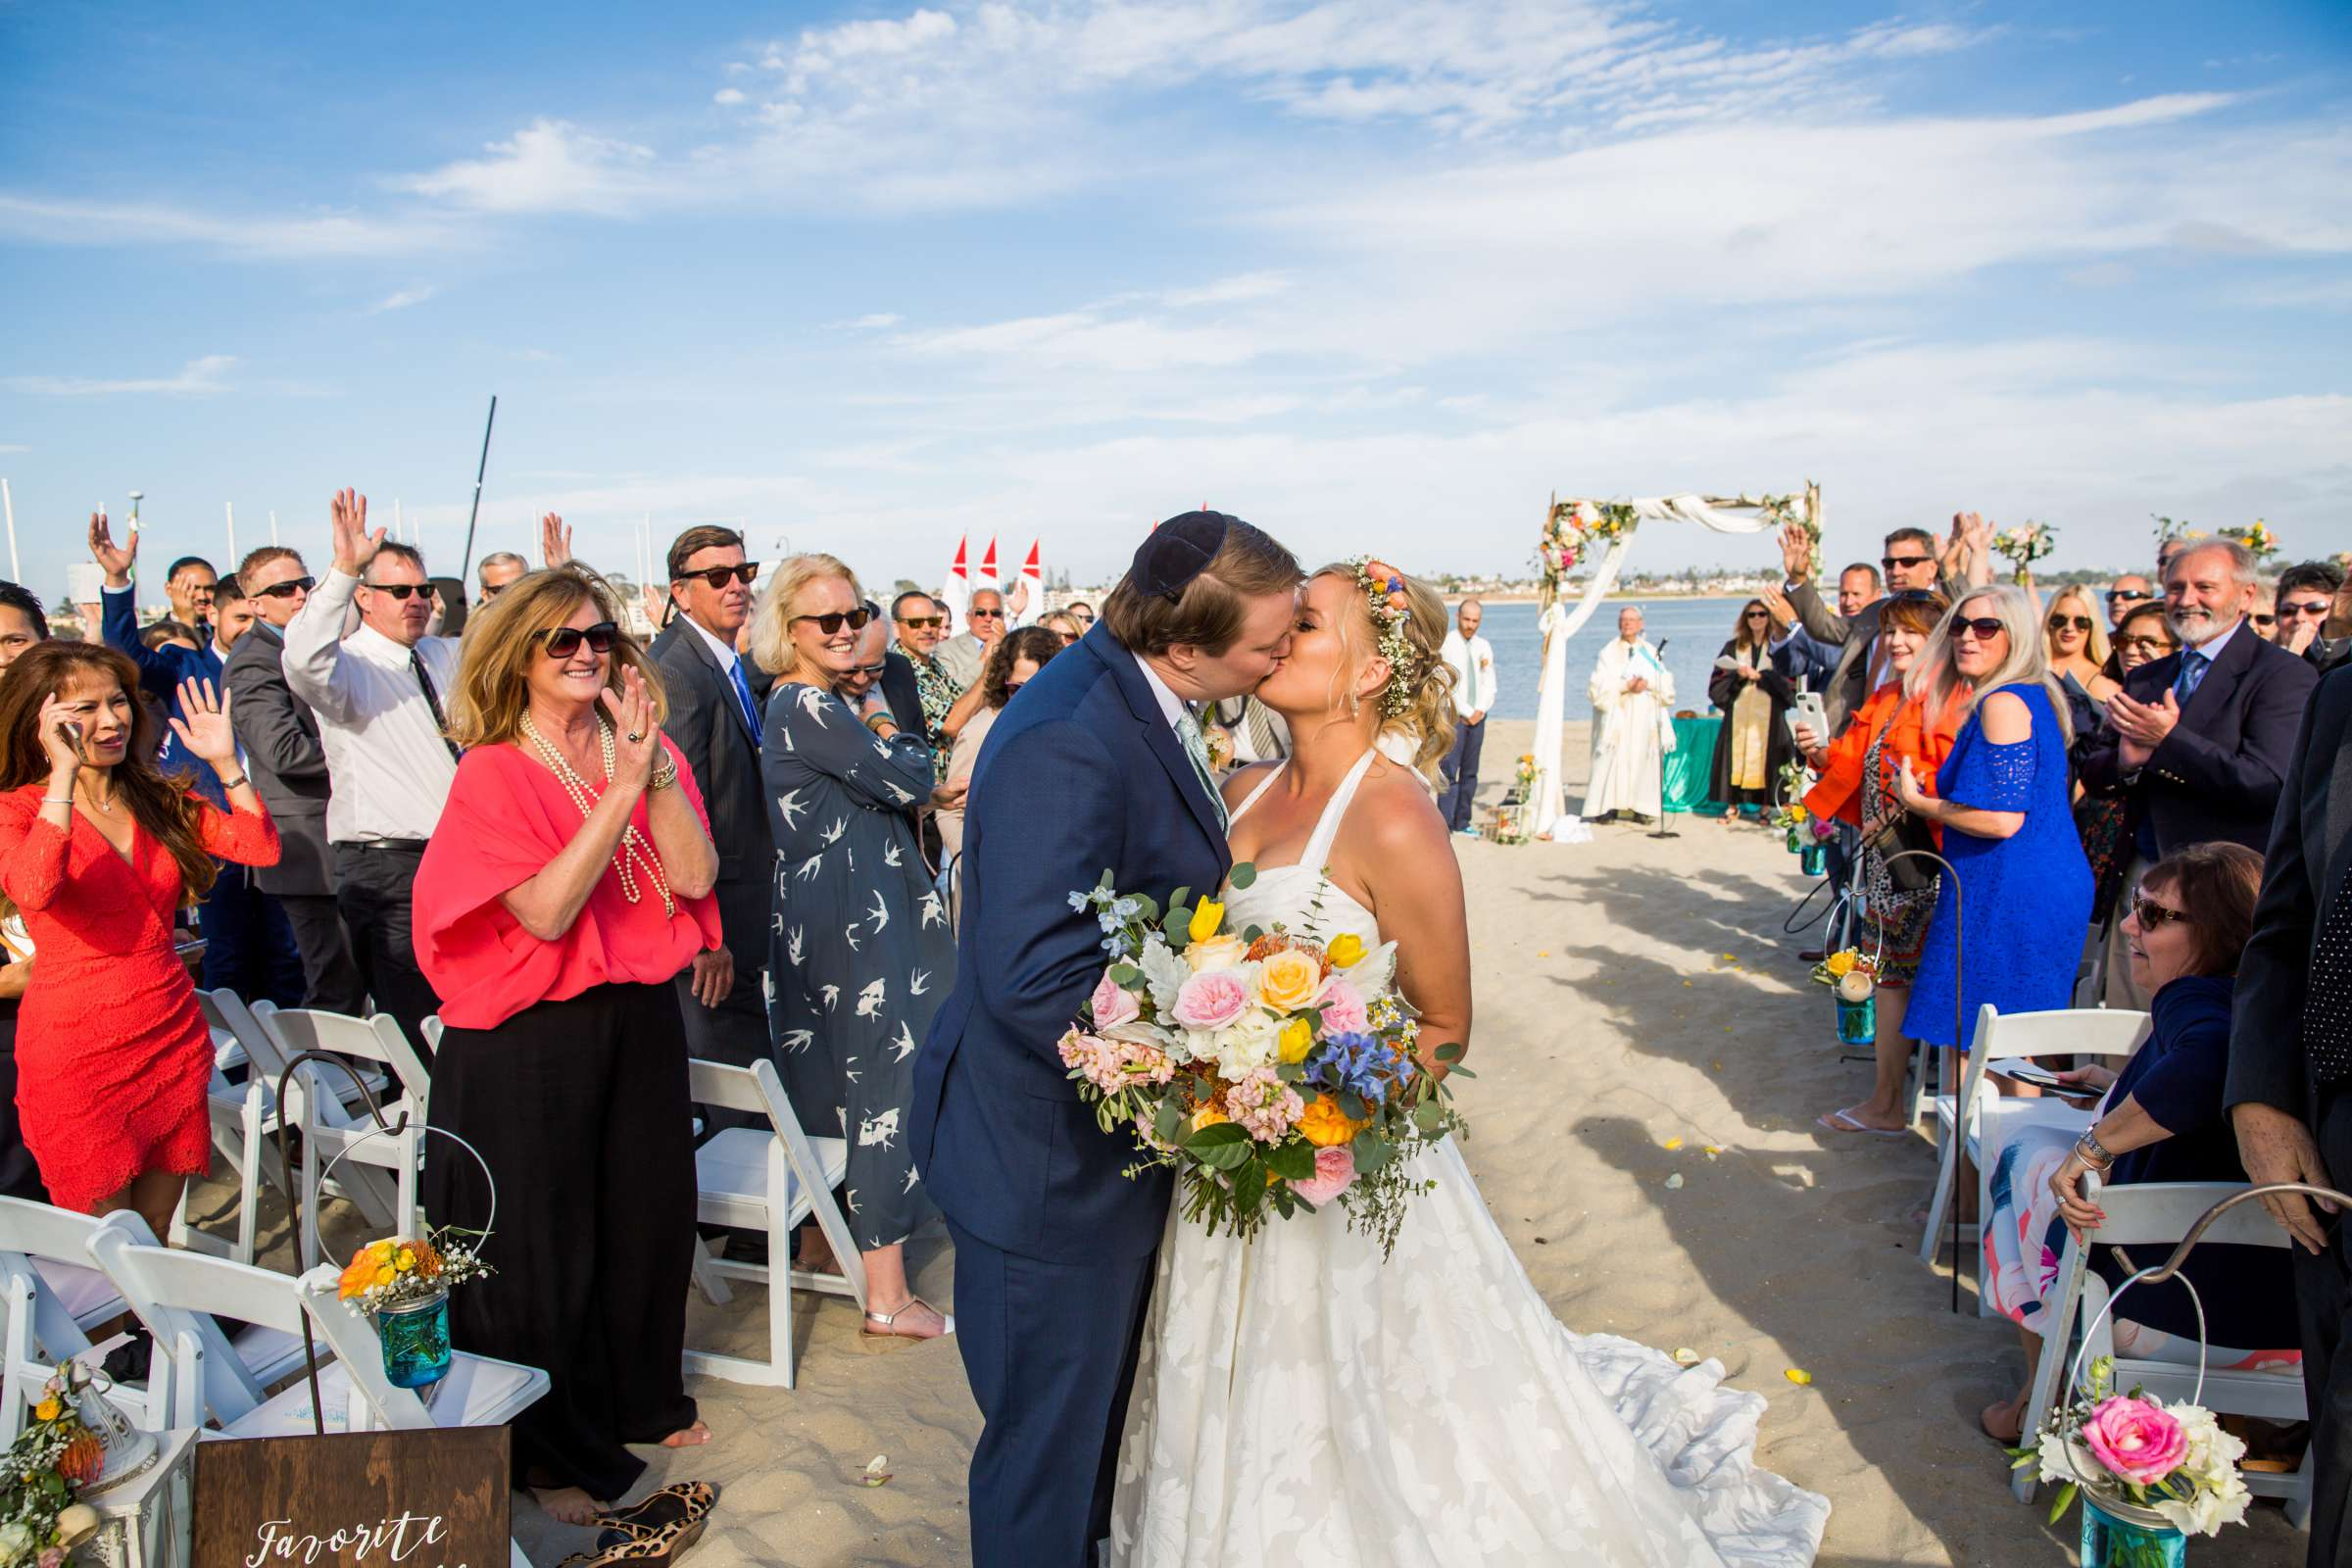 Catamaran Resort Wedding coordinated by Lavish Weddings, Brittany and David Wedding Photo #11 by True Photography